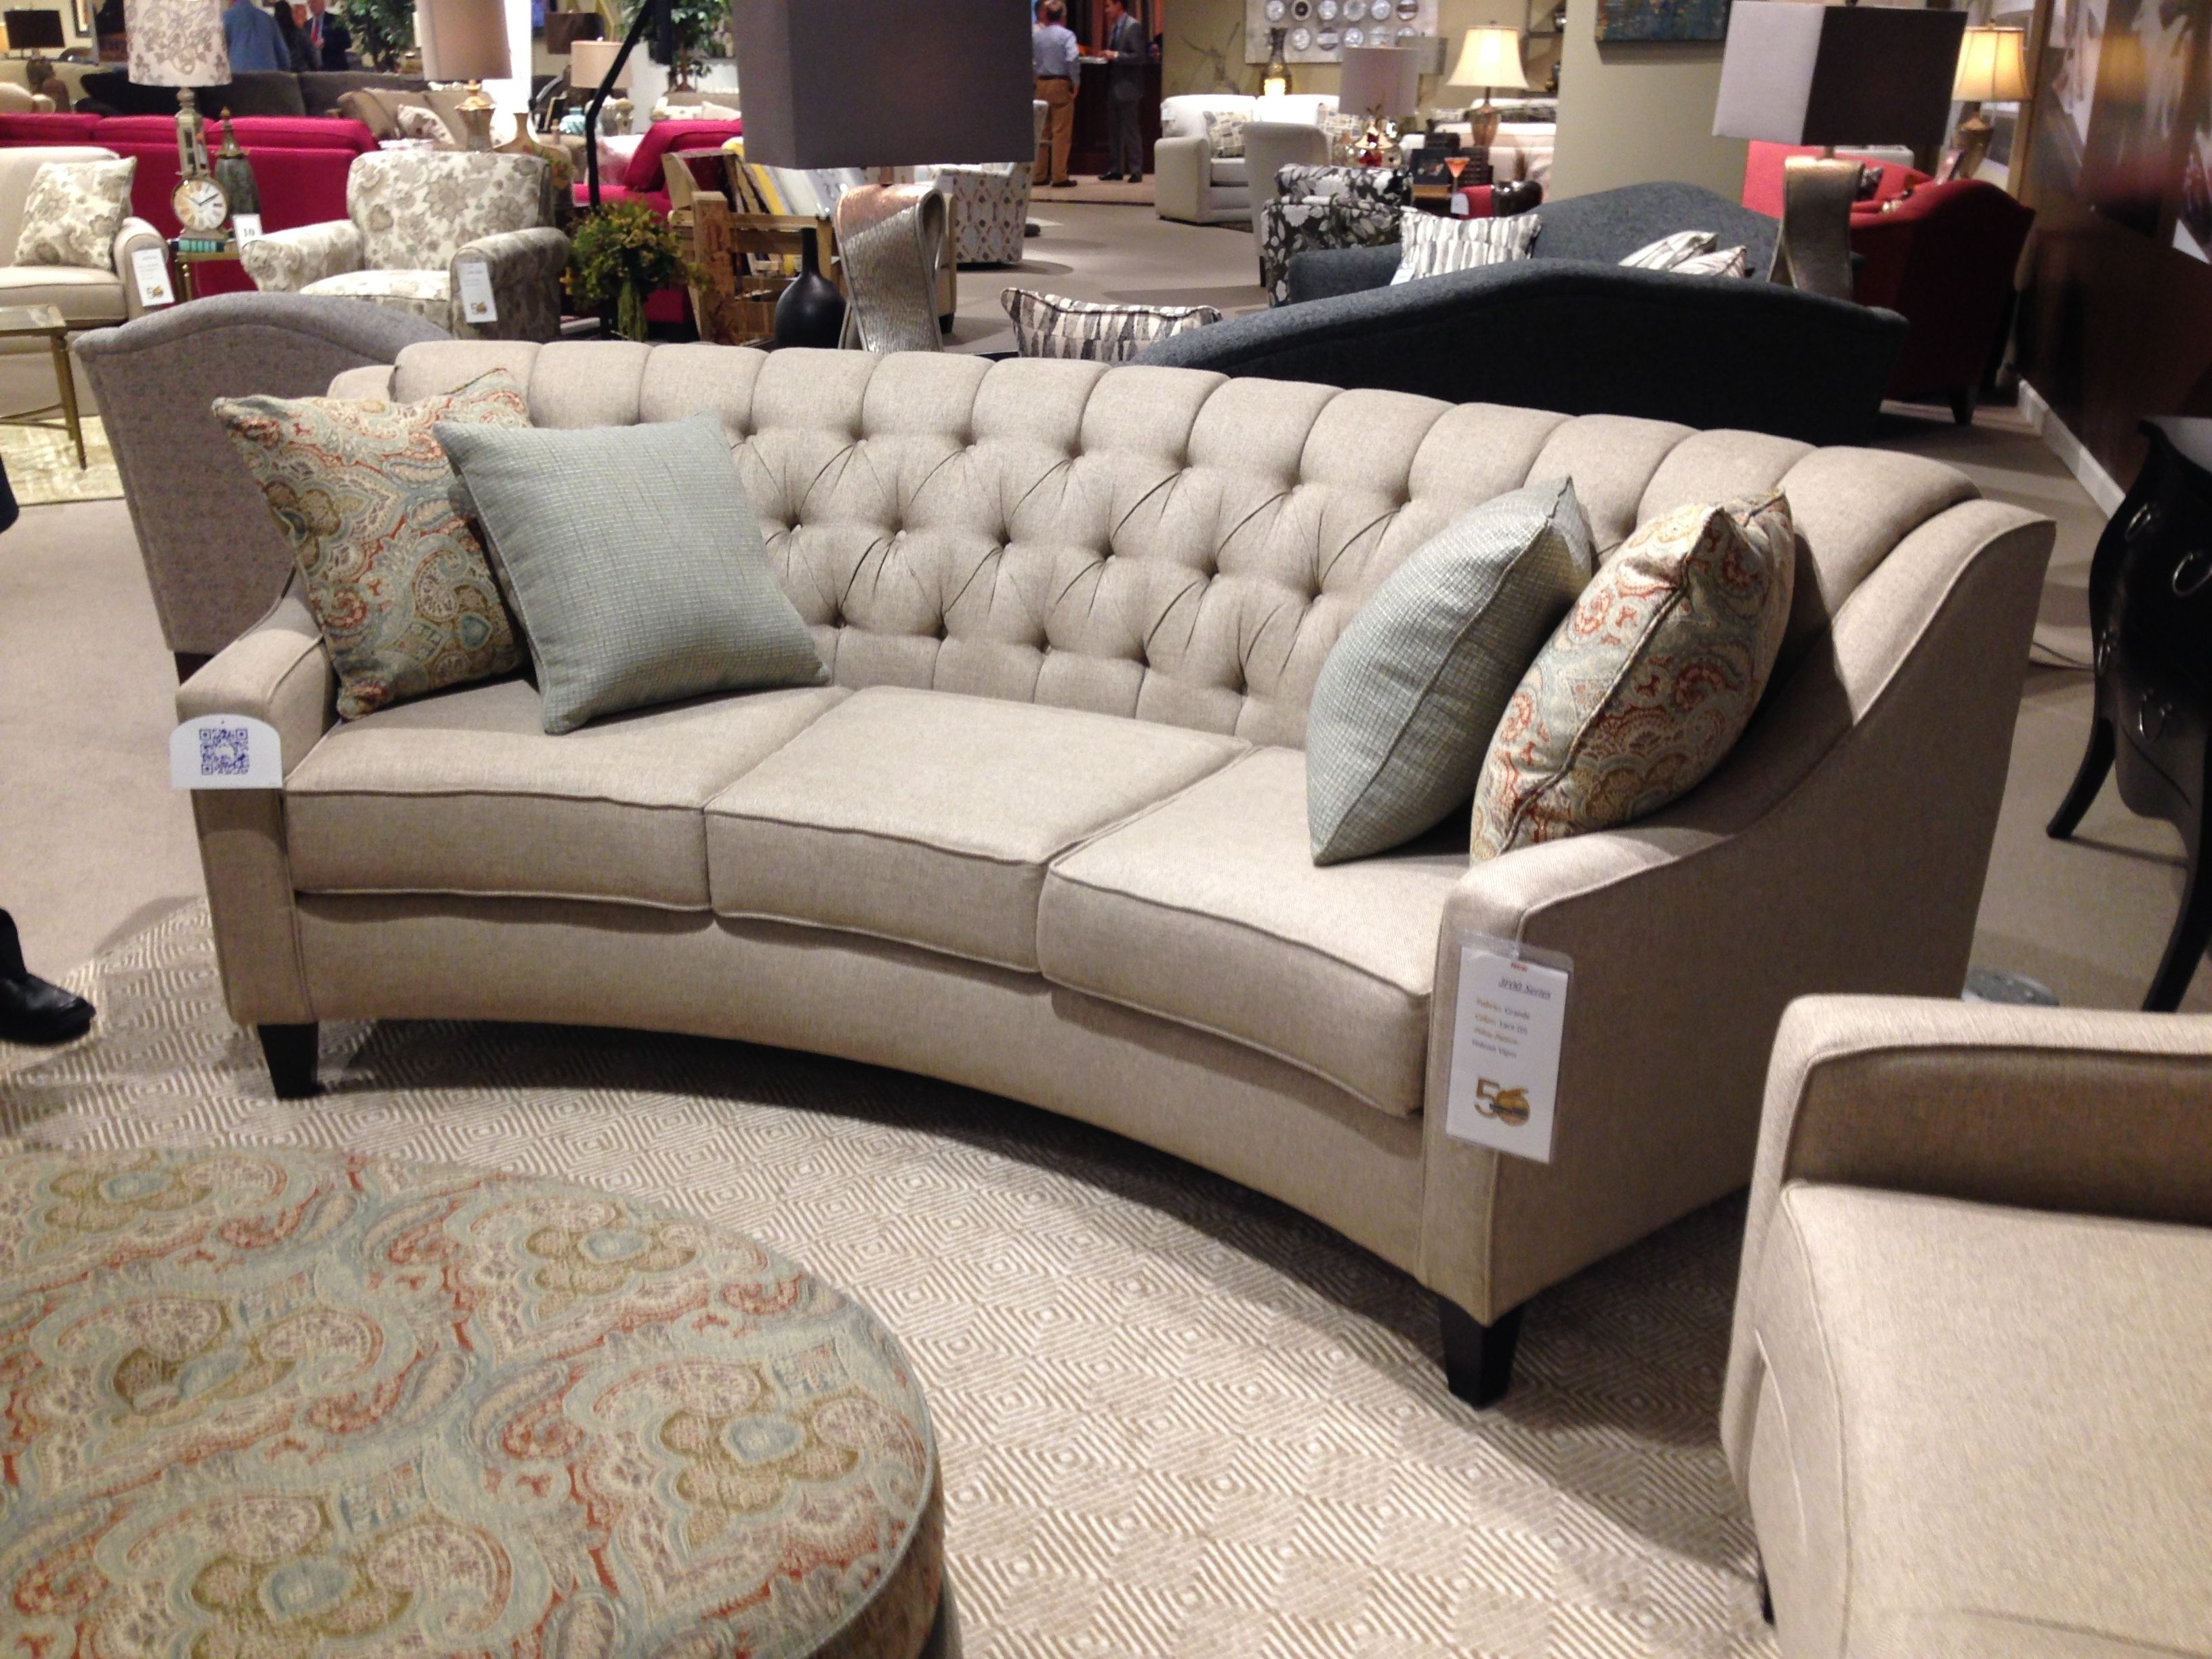 New Curved Sofa From England Furniture. Comes In 3 Sizes! Highpoint Throughout England Sectional Sofas (Photo 6 of 10)